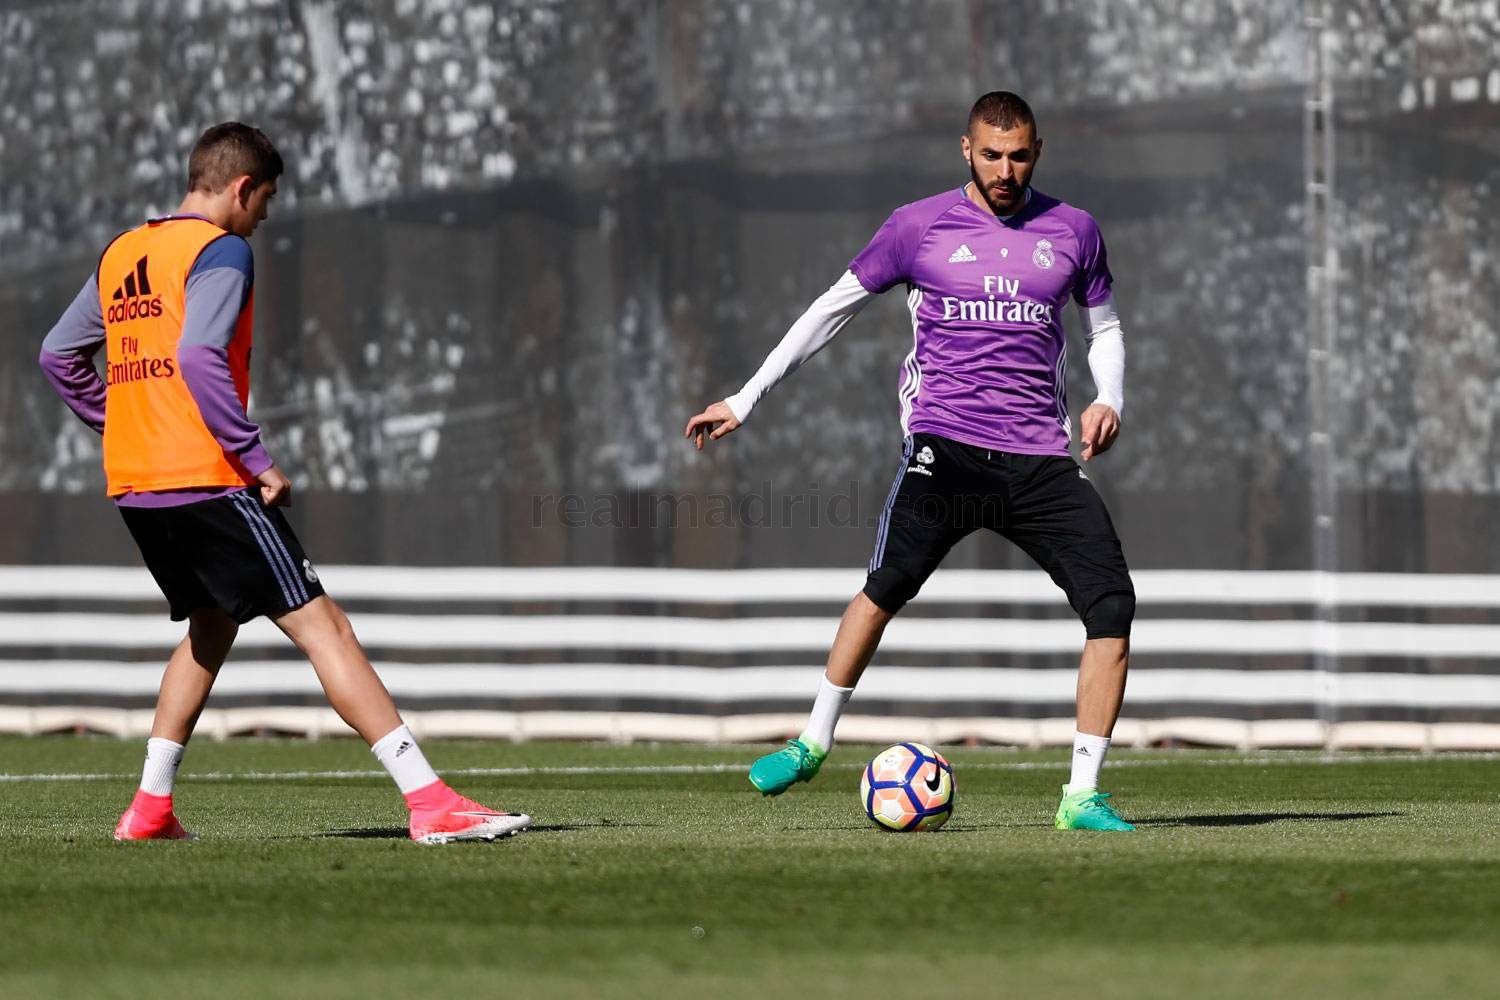 Real Madrid - Entrenamiento del Real Madrid - 28-03-2017